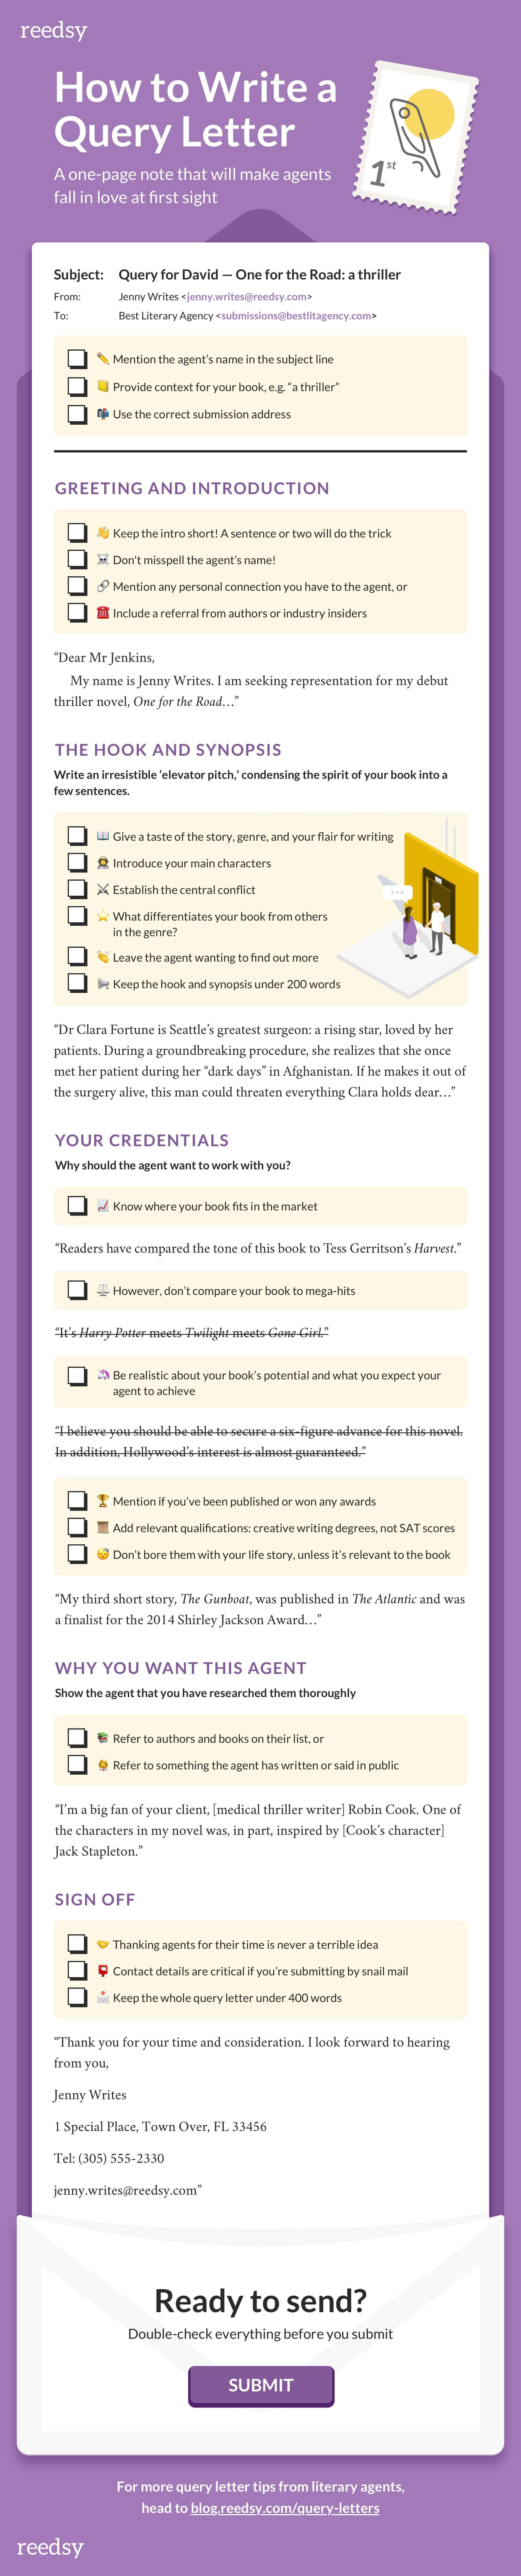 How To Write A Query Letter In  Simple Steps With Infographic